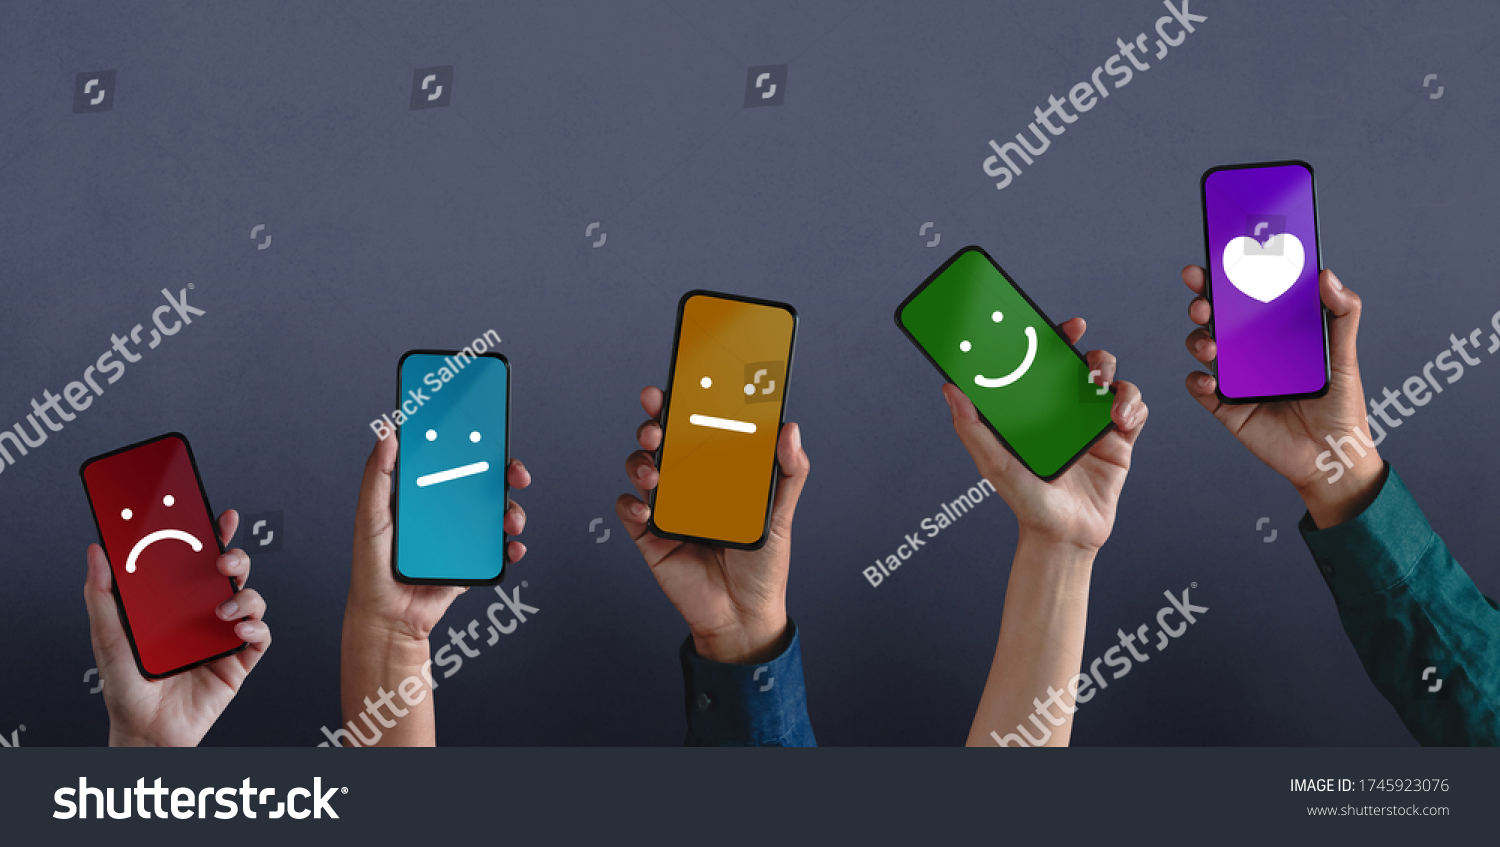 Customer Experiences Concept. Group of Diversity People Giving Feedback via Mobile Phone, from Negative to Positive Review. Poor to Excellent. Client's Satisfaction Surveys on Mobile Phone #1745923076